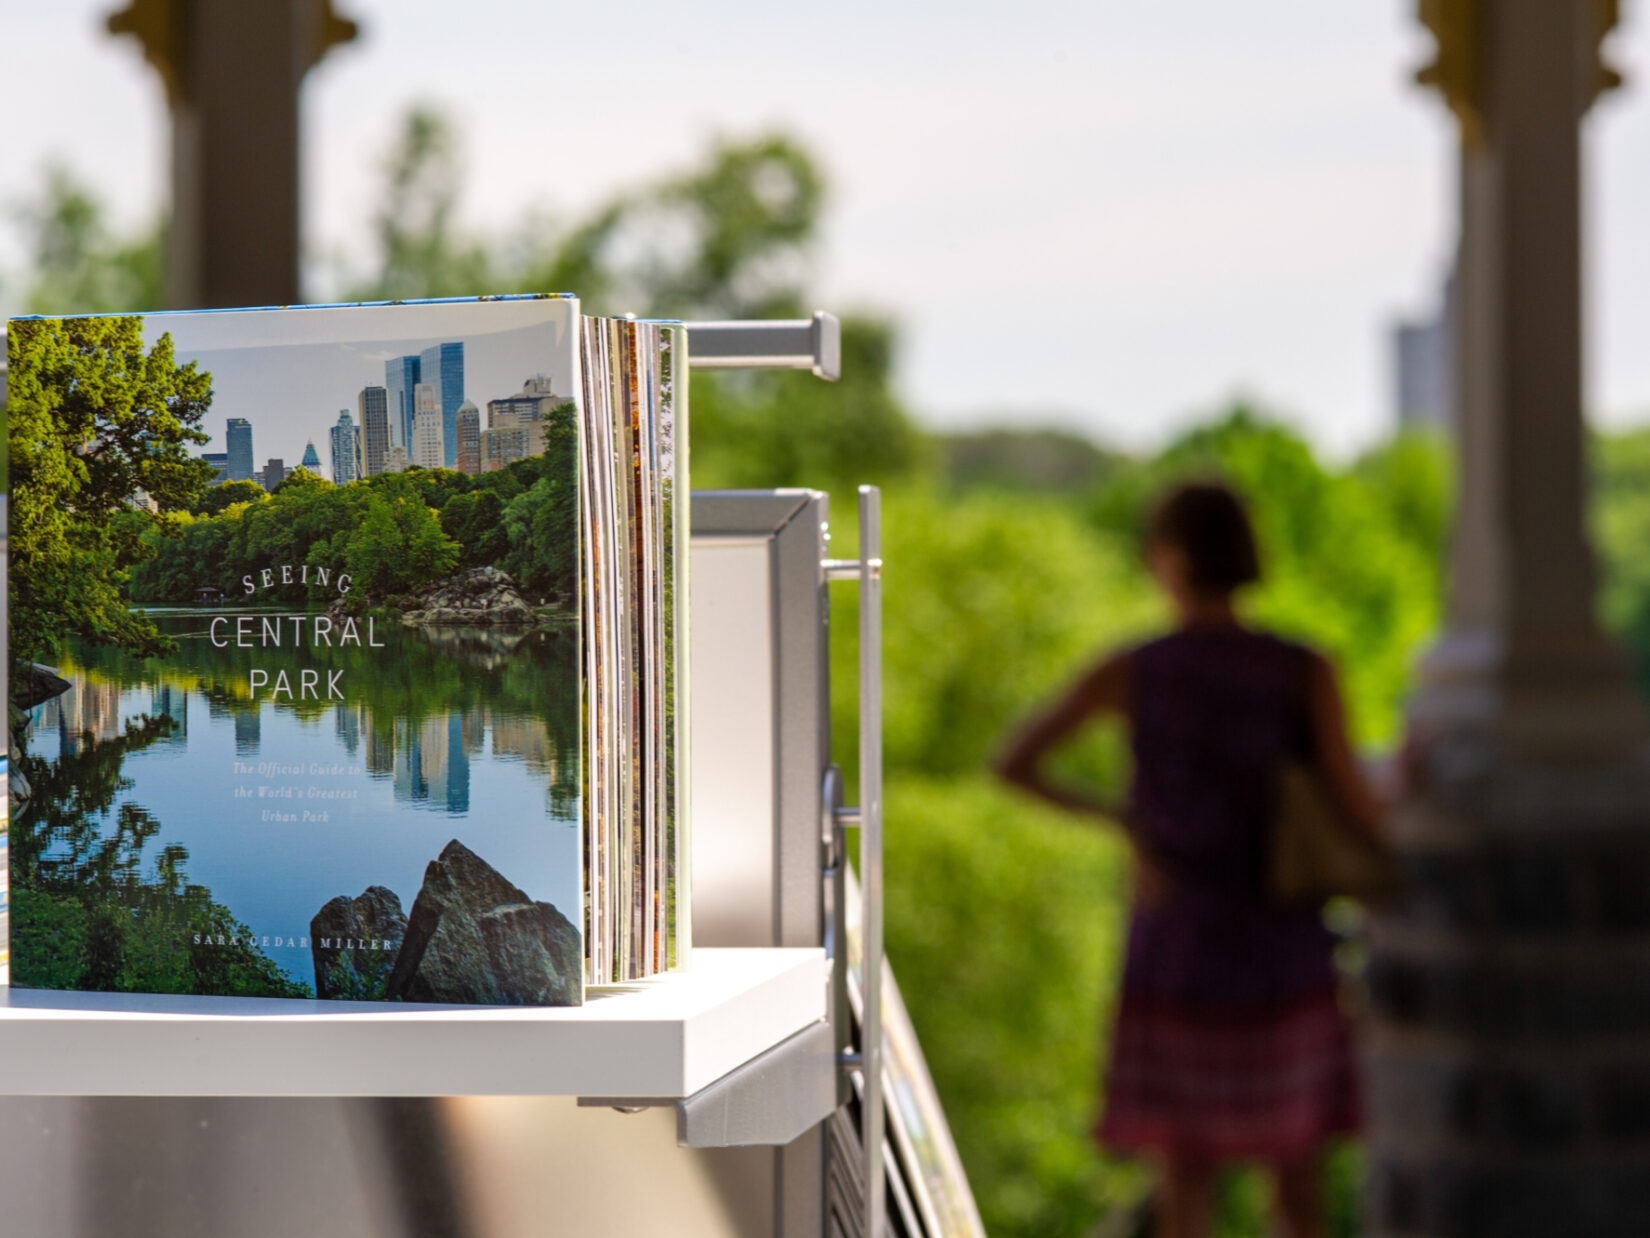 A picture book on sale at the gift shop, with the greenery of the Park in the background